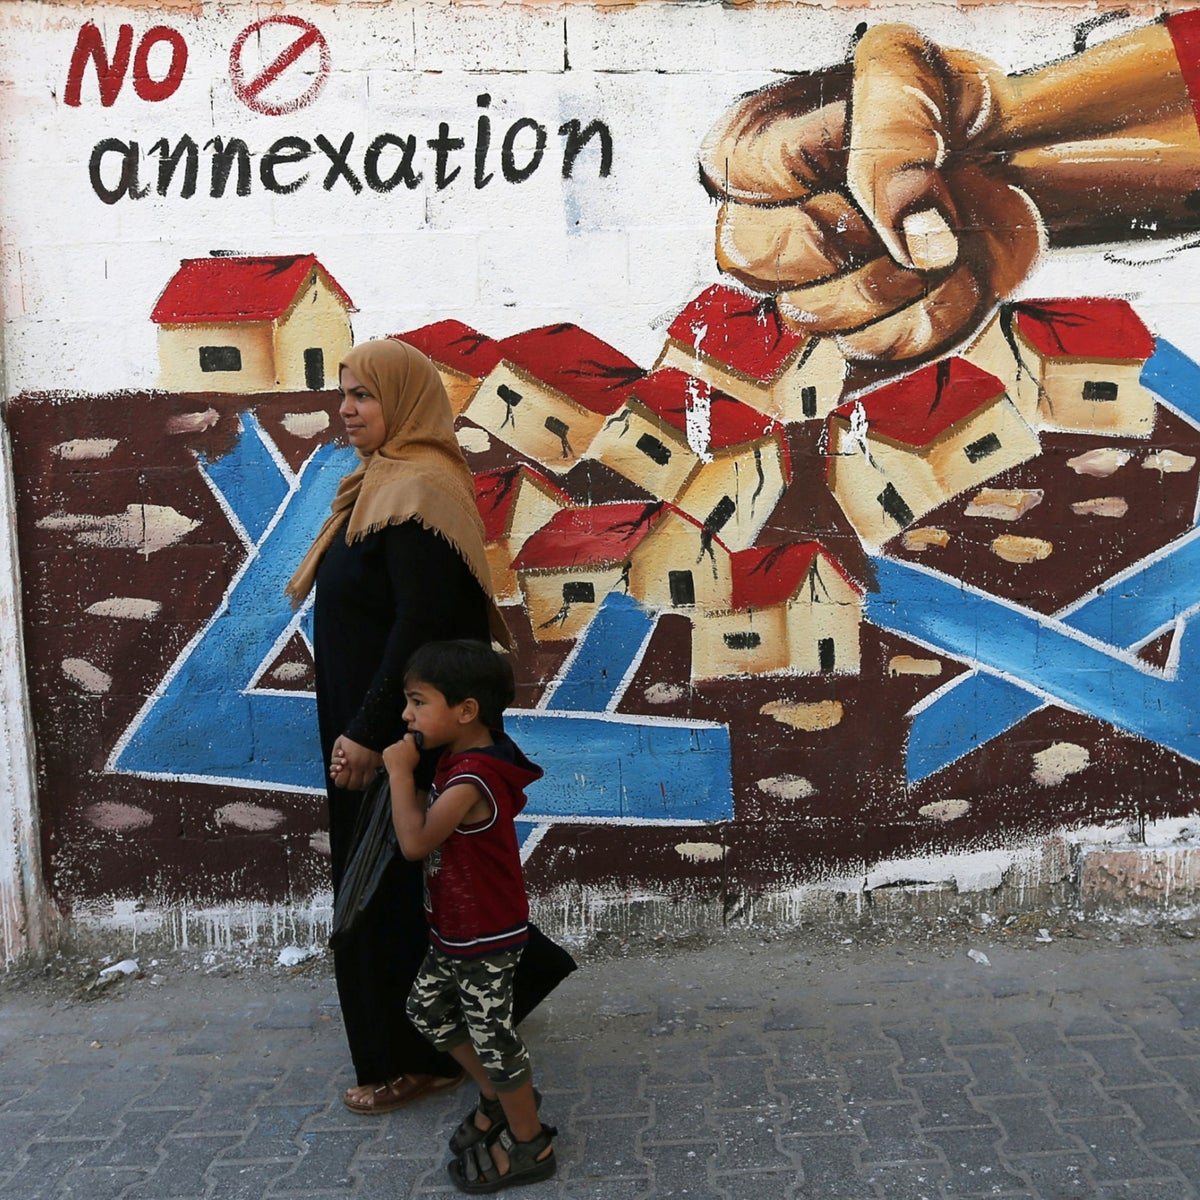 A Palestinian woman walking with her son past a mural protesting Israel's plan to annex parts of the West Bank, Rafah, Gaza Strip, July 14, 2020.